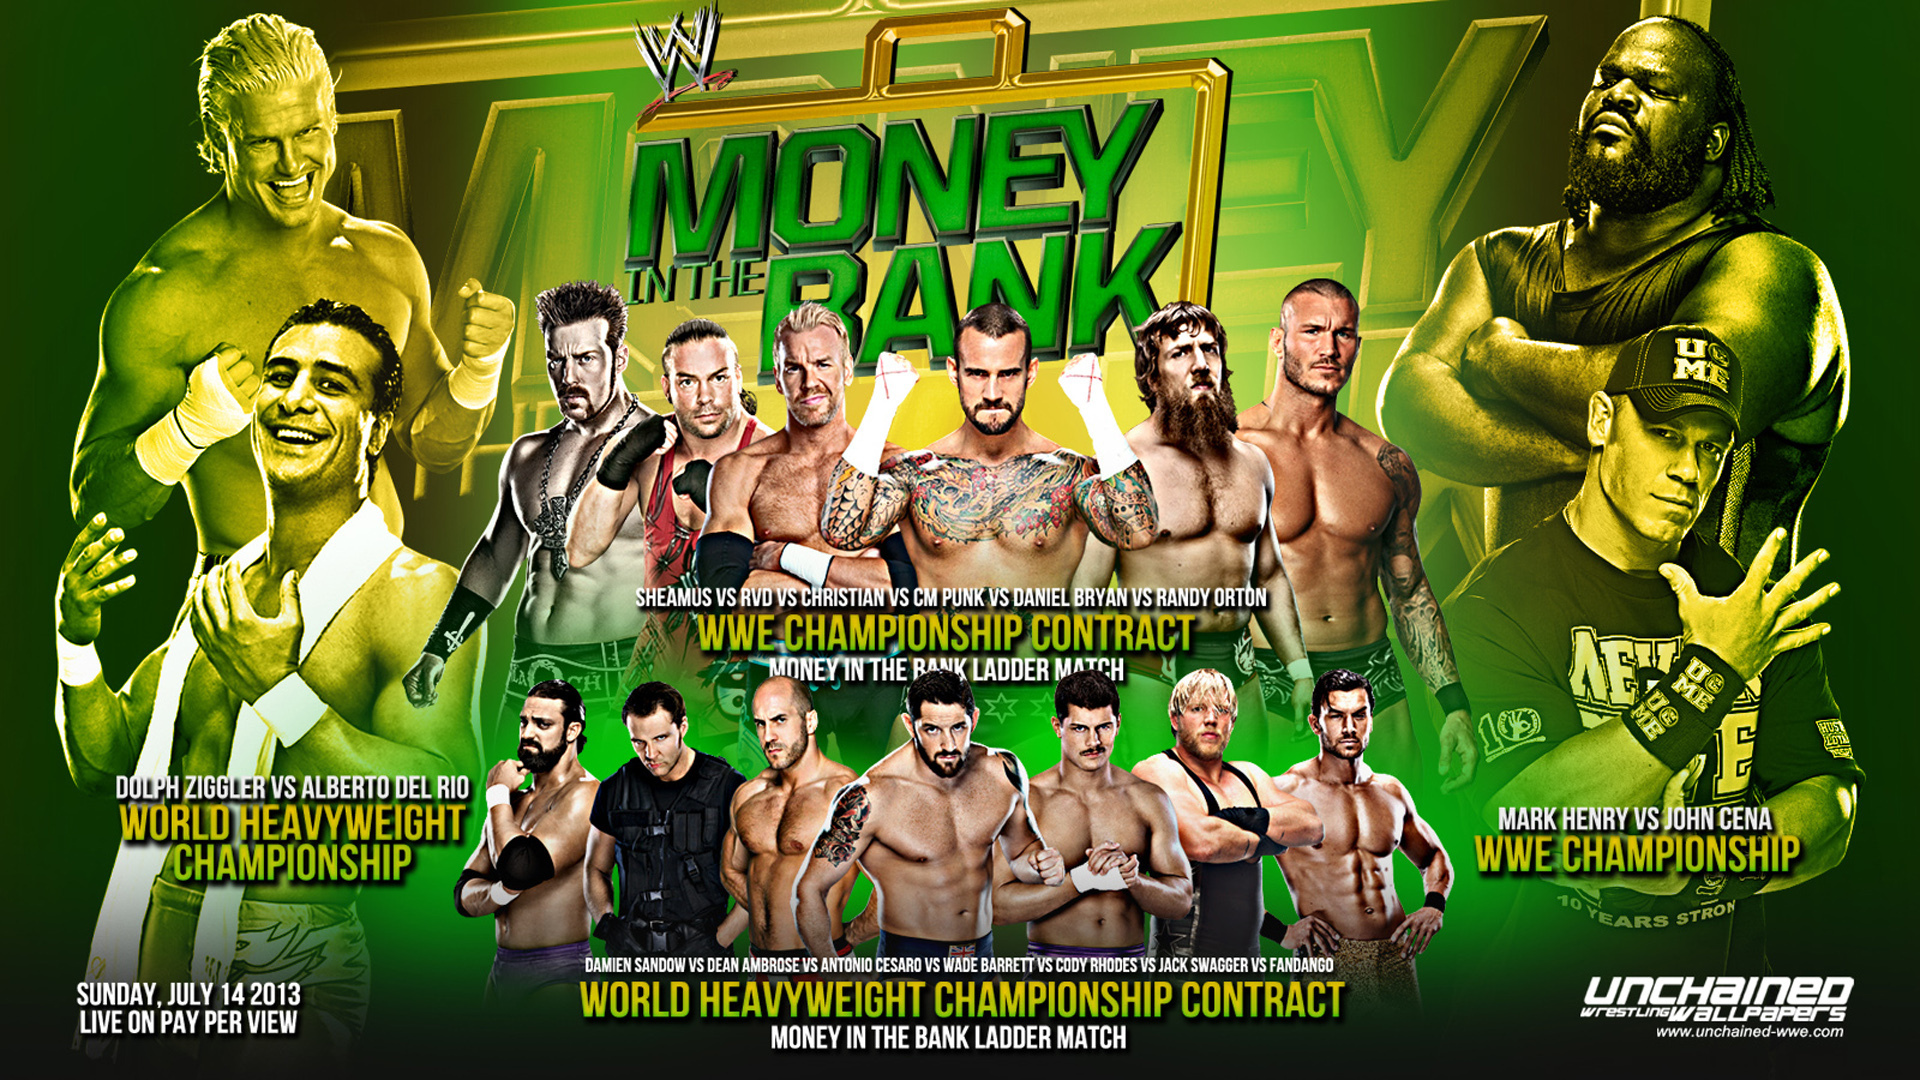 wwe money in the bank 2017 live stream 2